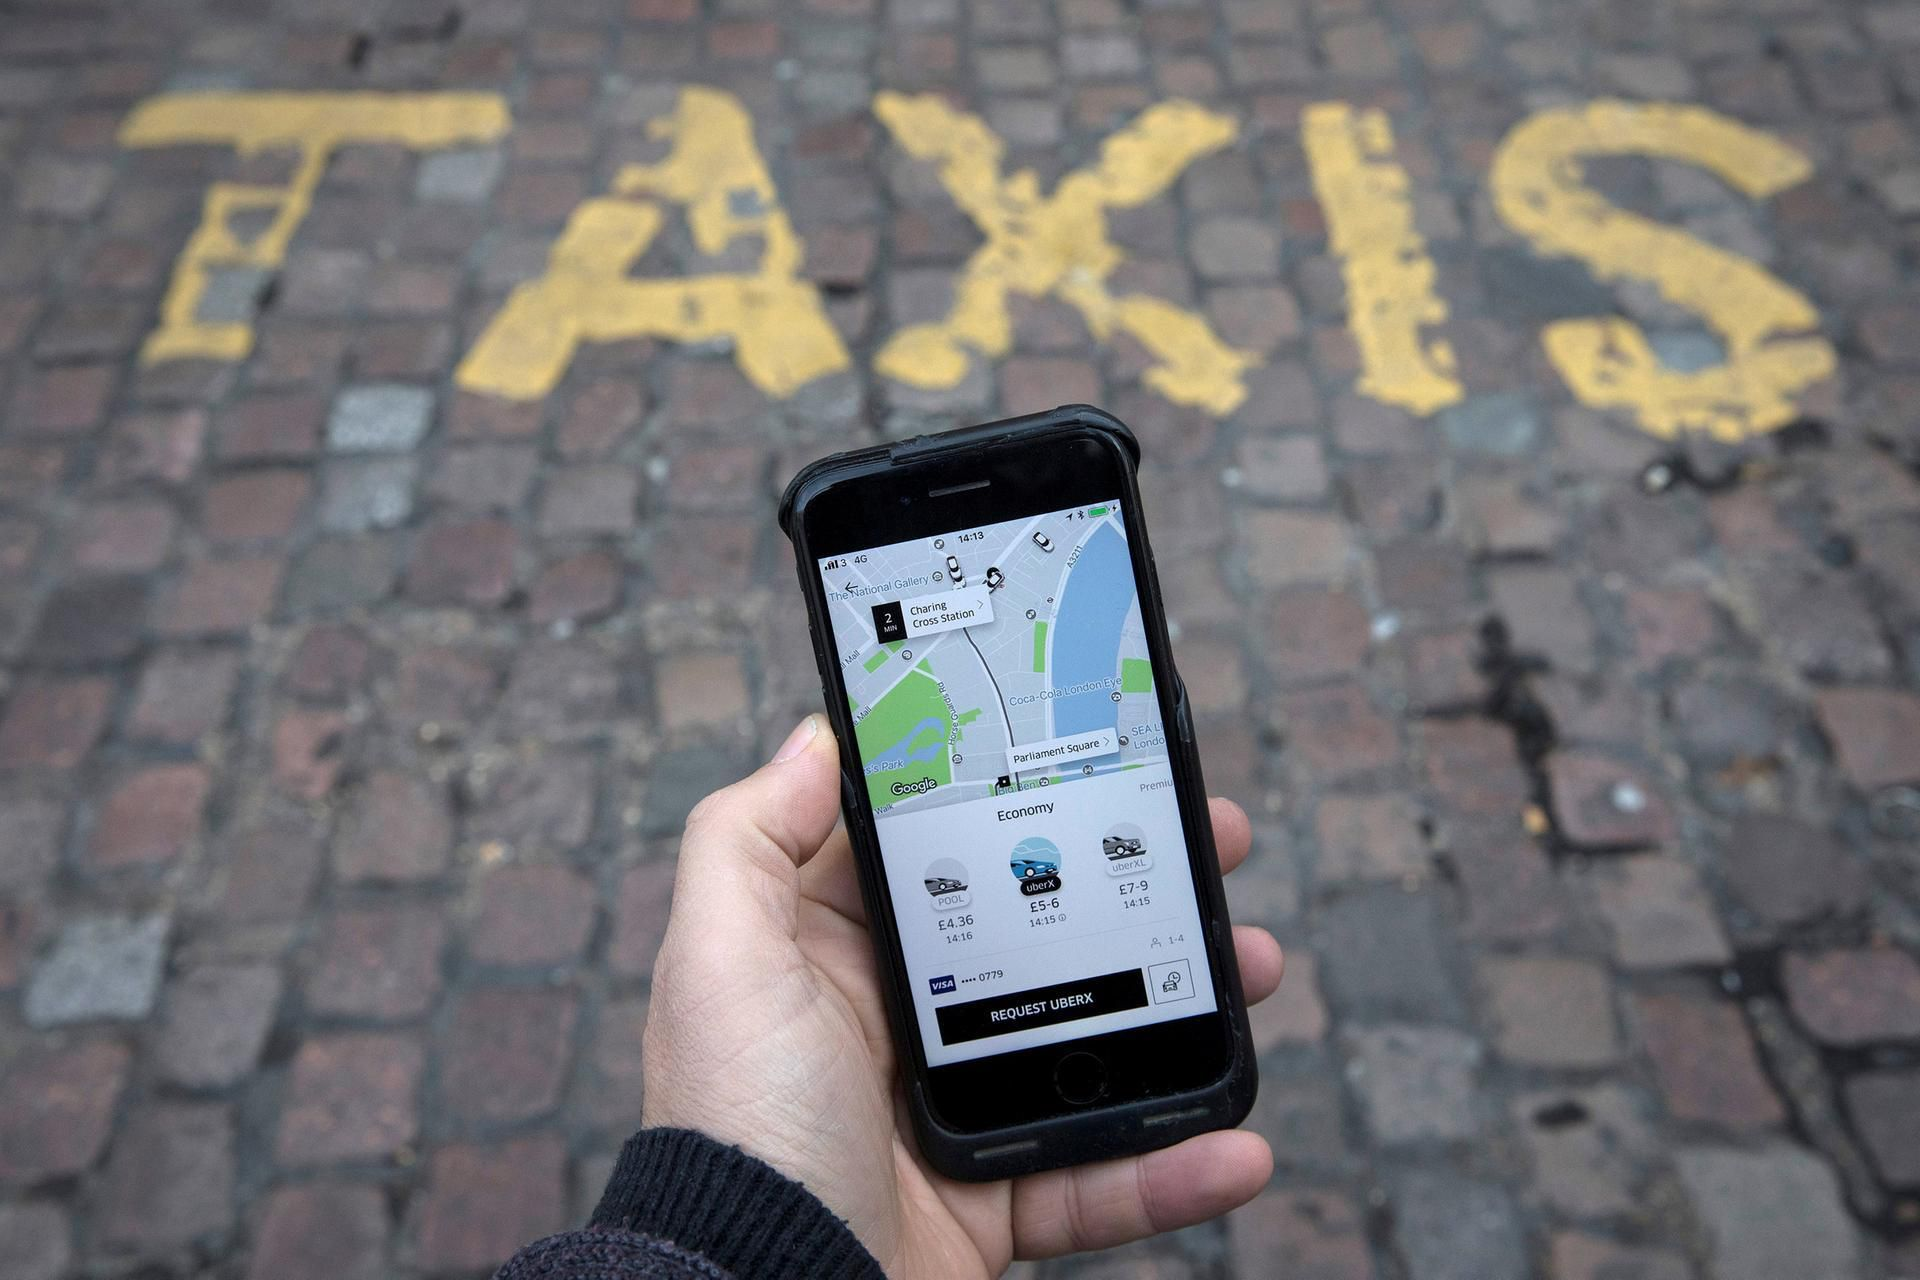 Embedded finance occurs when financial services are embedded within non-traditional financial services areas, such as banking services within a ridesharing app. Reuters